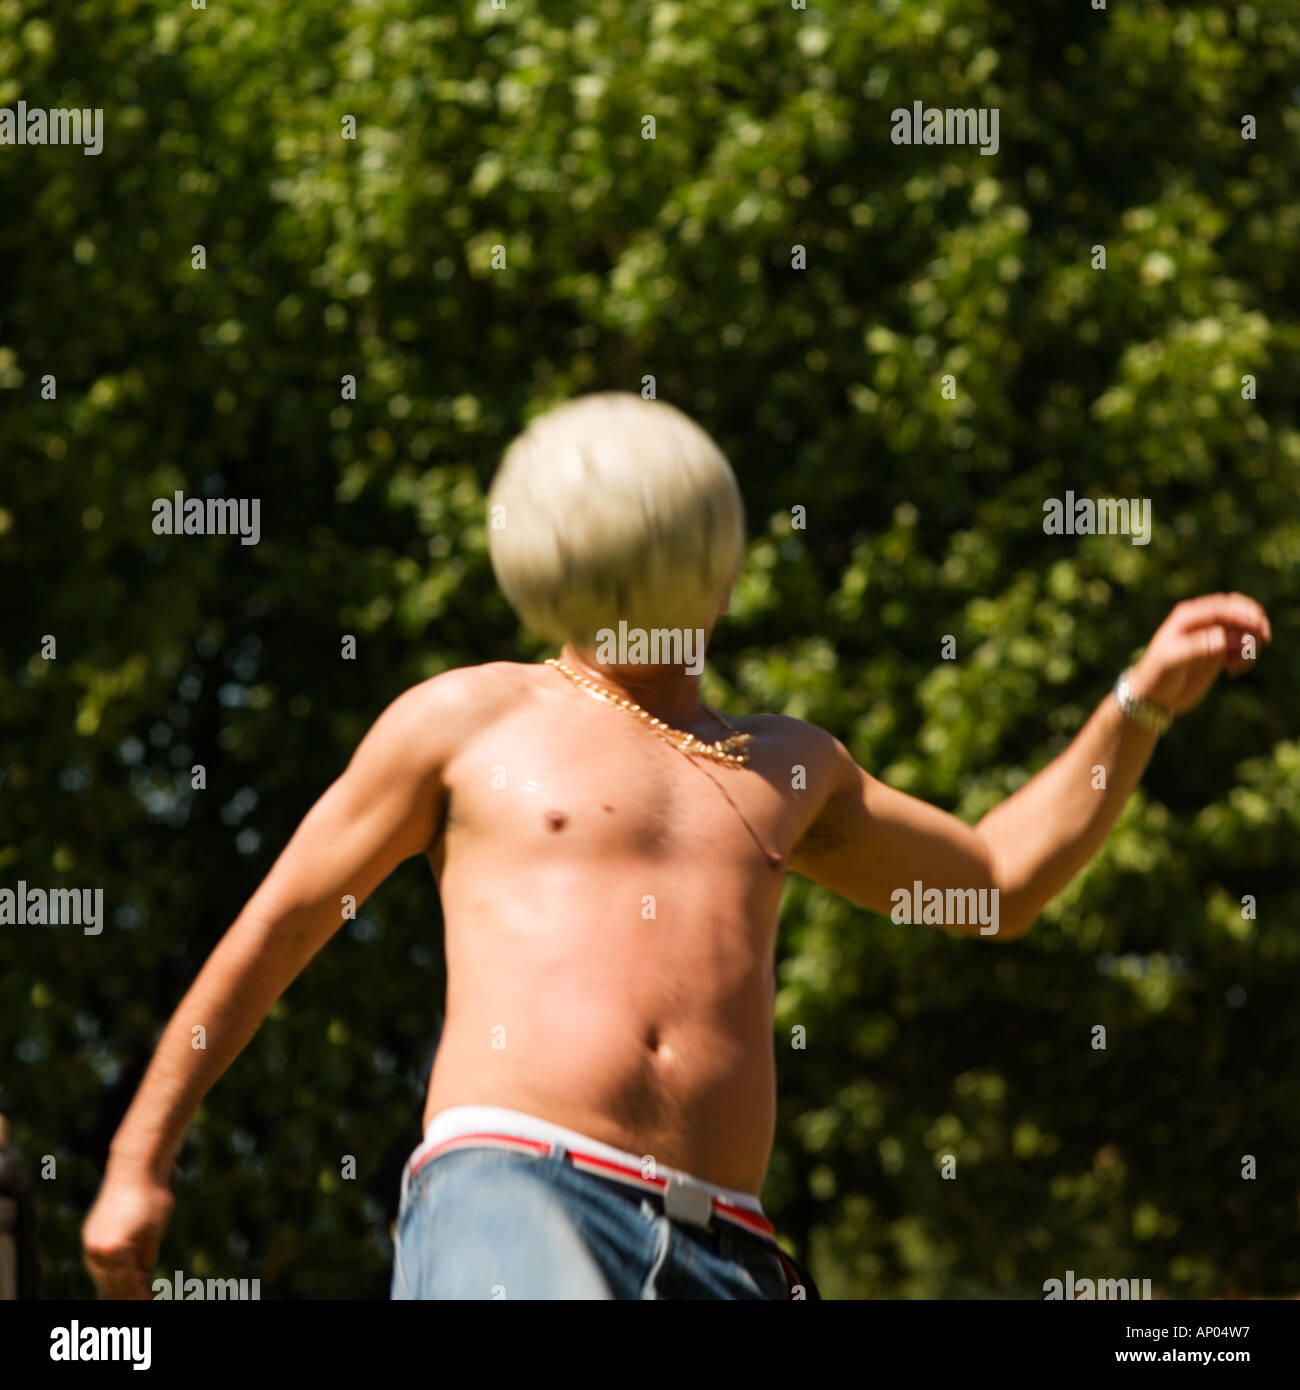 footballer summer park life.No model release required: head crop so unrecognizable - Stock Image